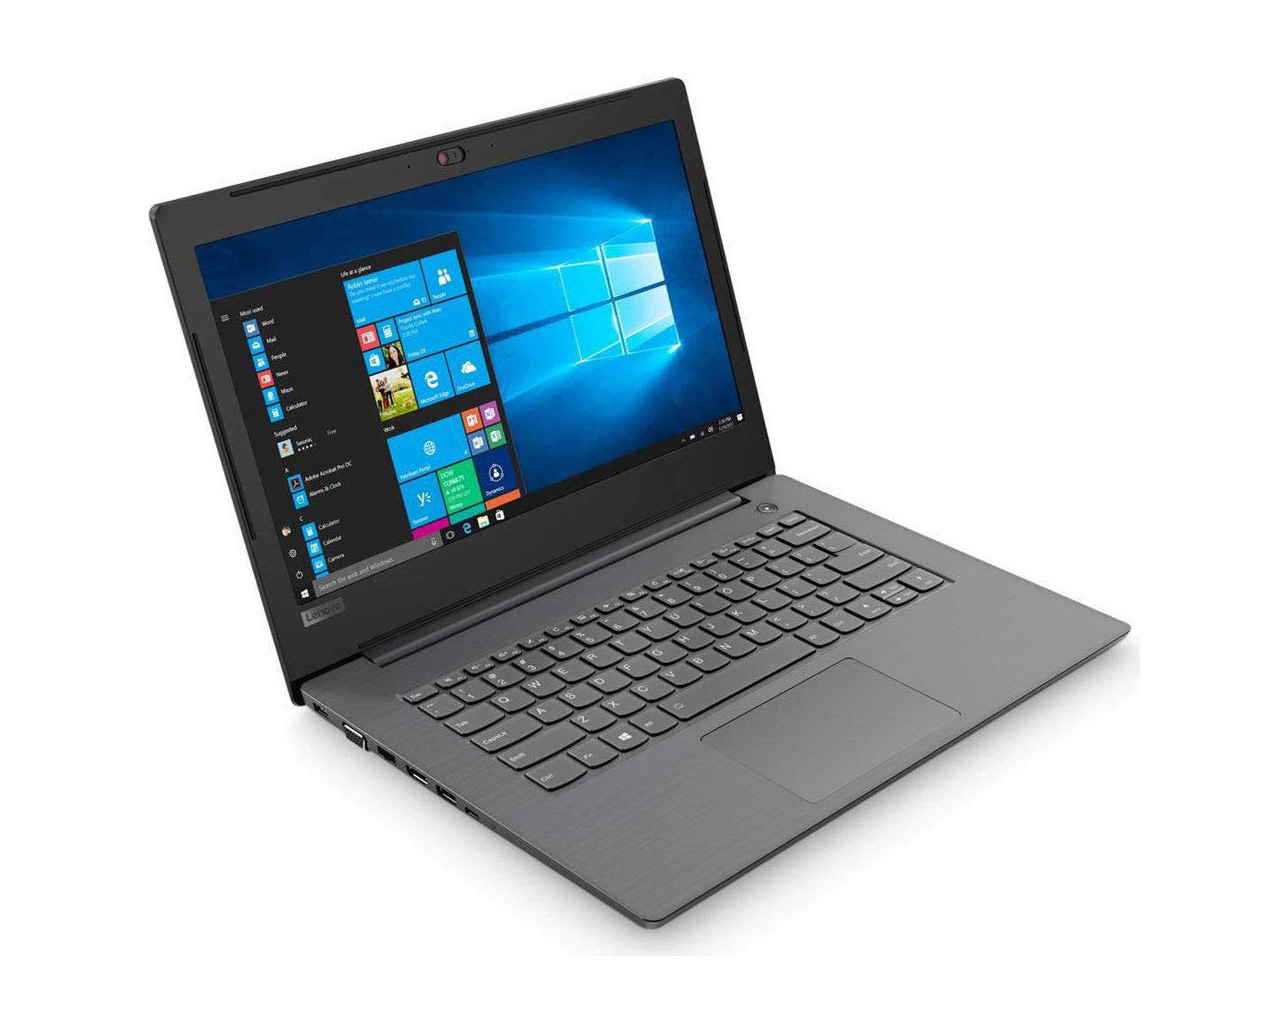 Lenovo V330 Series - Notebookcheck net External Reviews